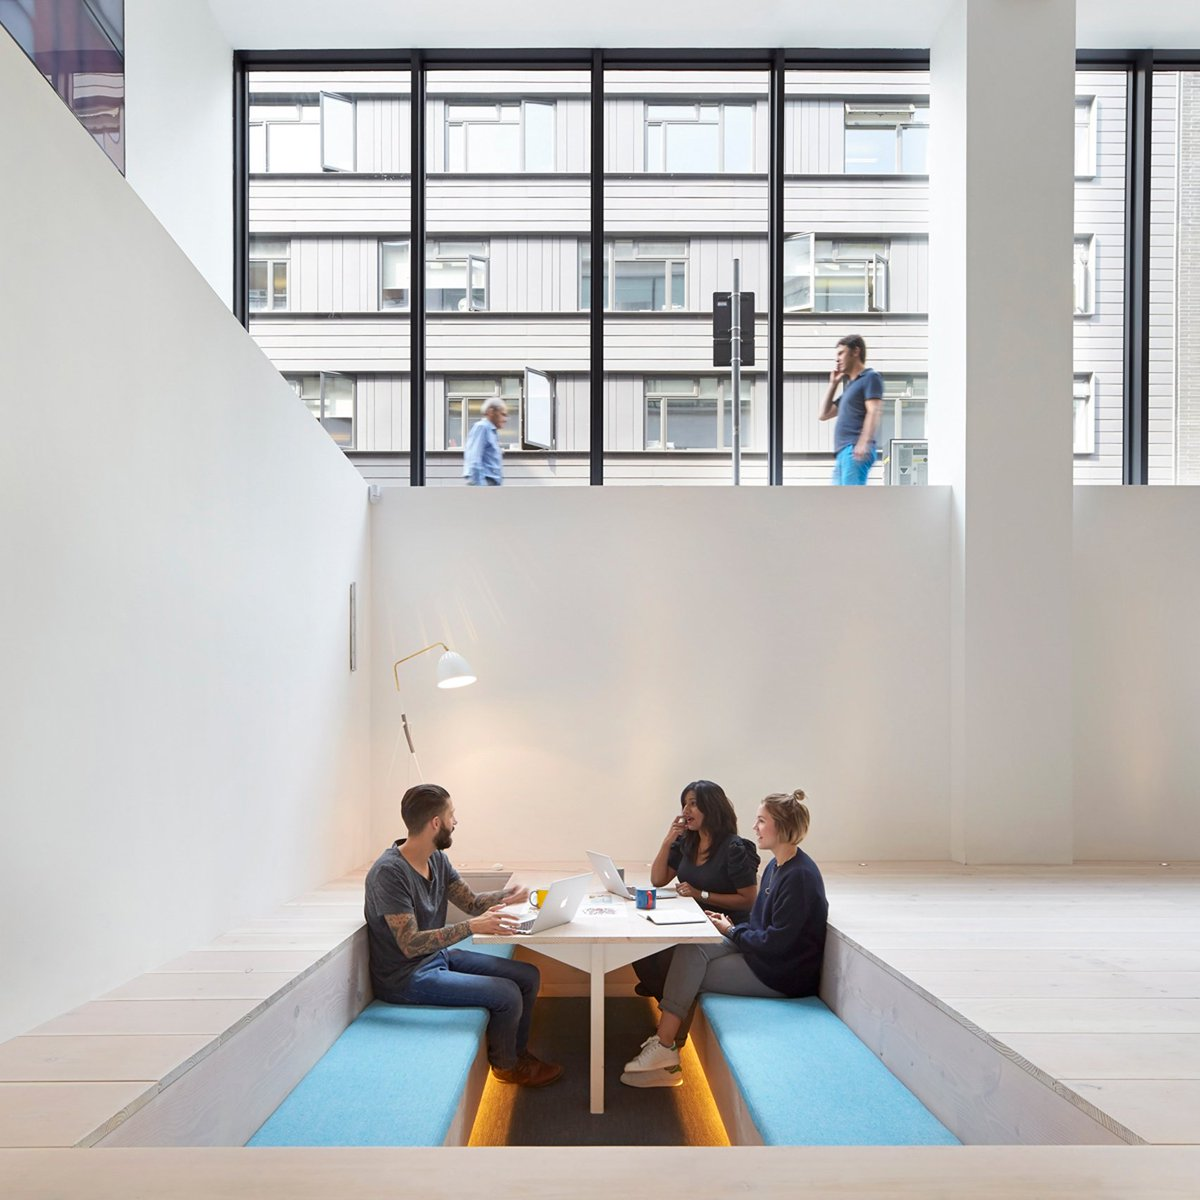 Dezeen on twitter 10 of the most creative office interiors https t co gsoubb0dqd